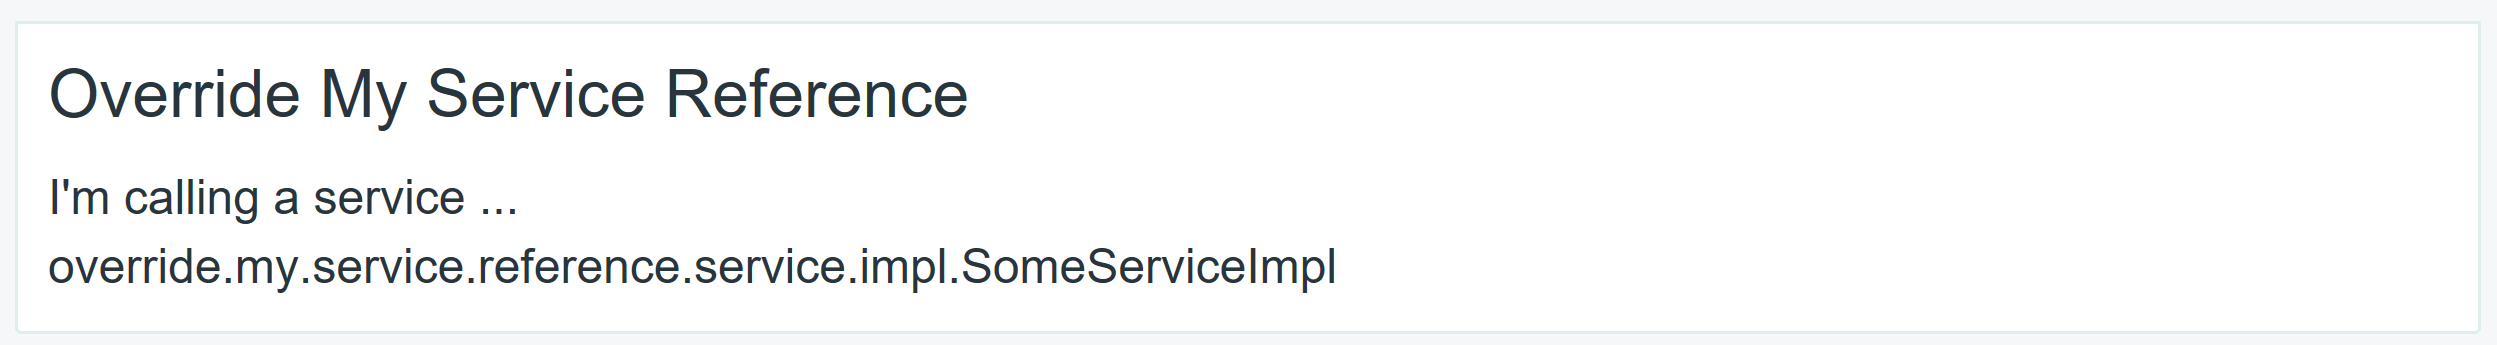 Figure 1: Prior to overriding the service reference in example portlet module override-my-service-reference, the portlets message indicates its calling the default service implementation override.my.service.reference.service.impl.SomeServiceImpl